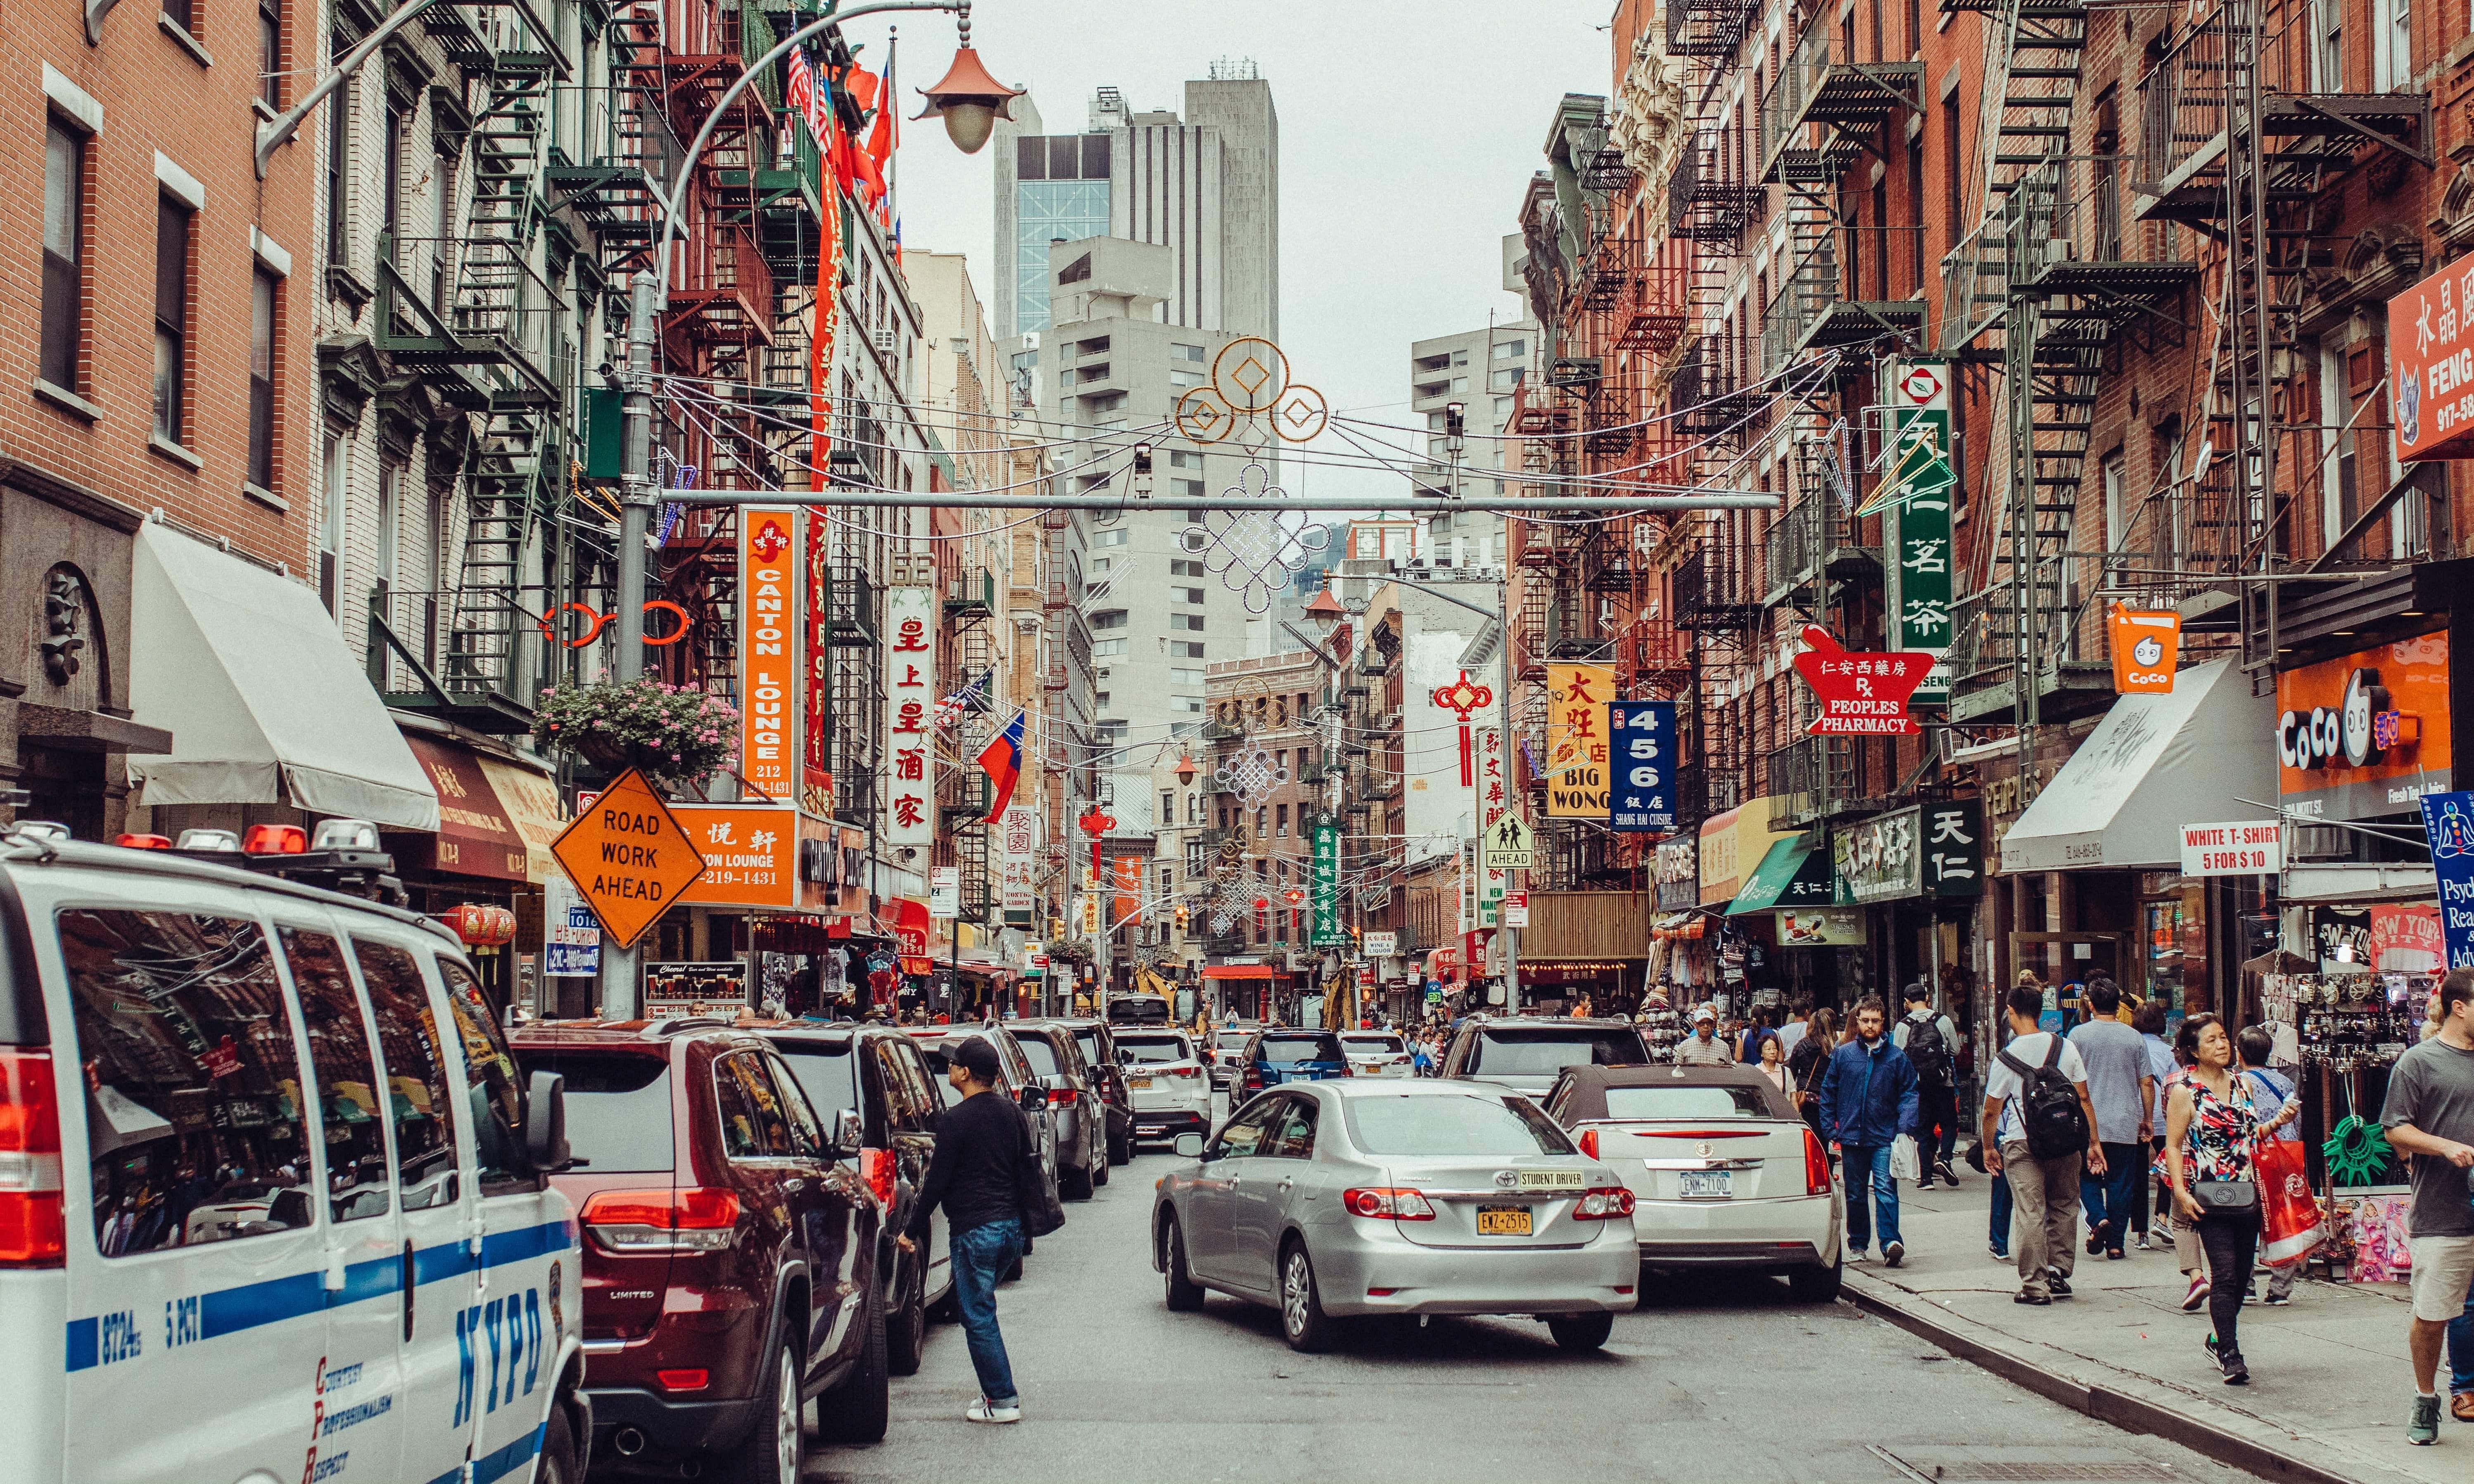 Downtown Chinatown NYC